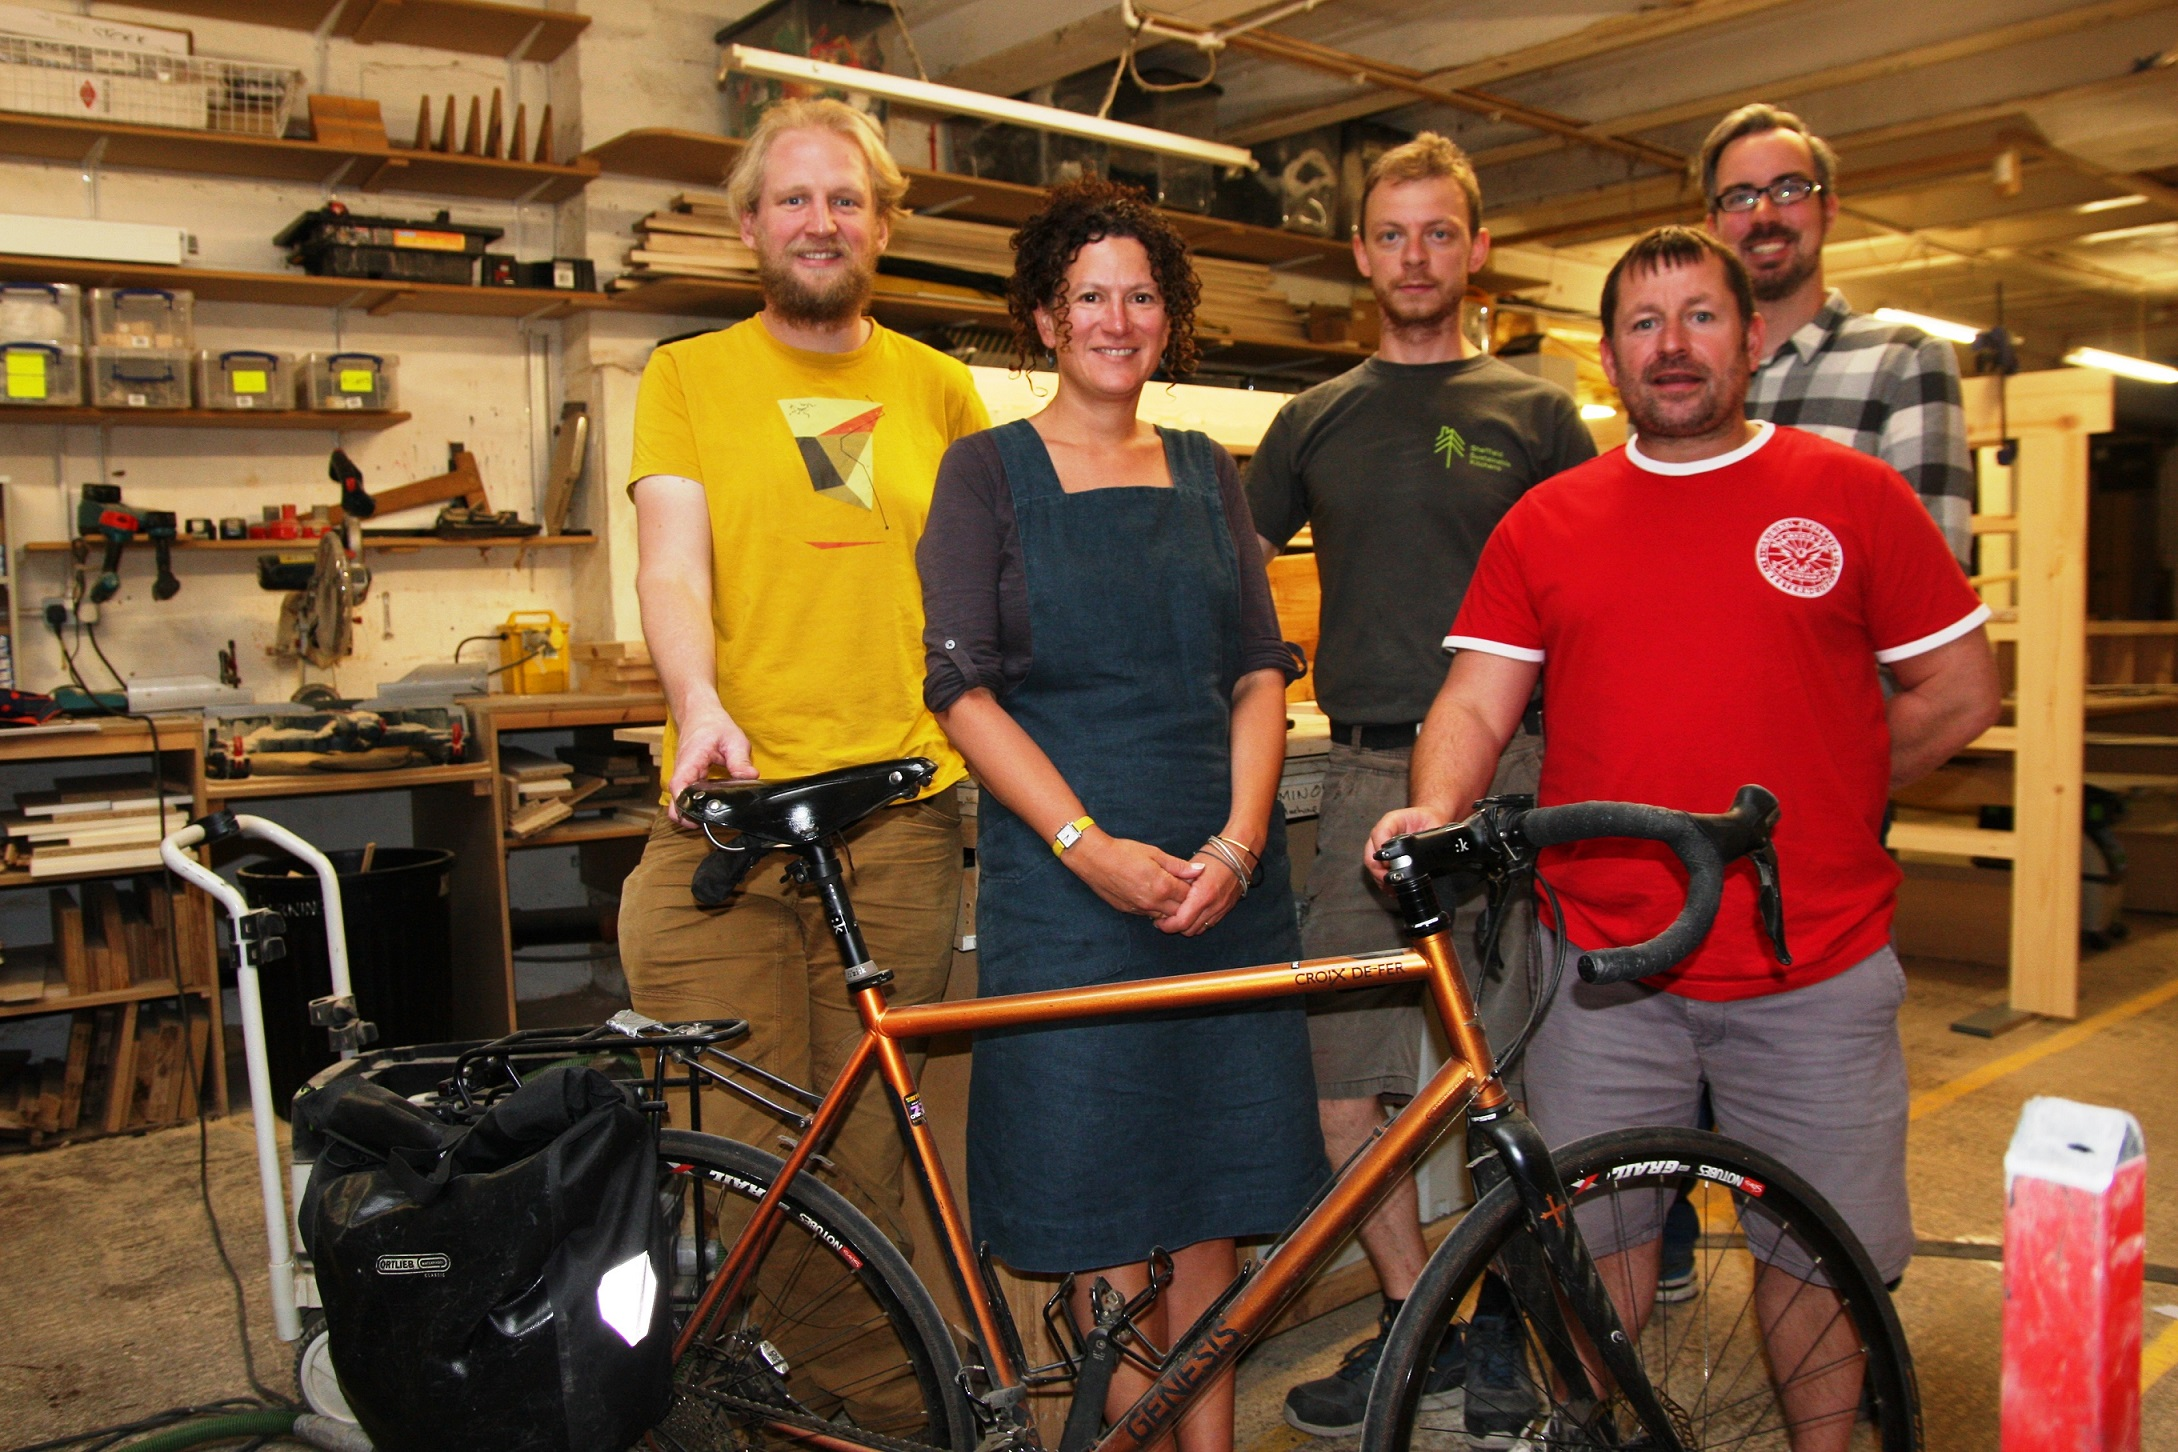 Kitchen firm gets entire workforce pedalling for Cycle September